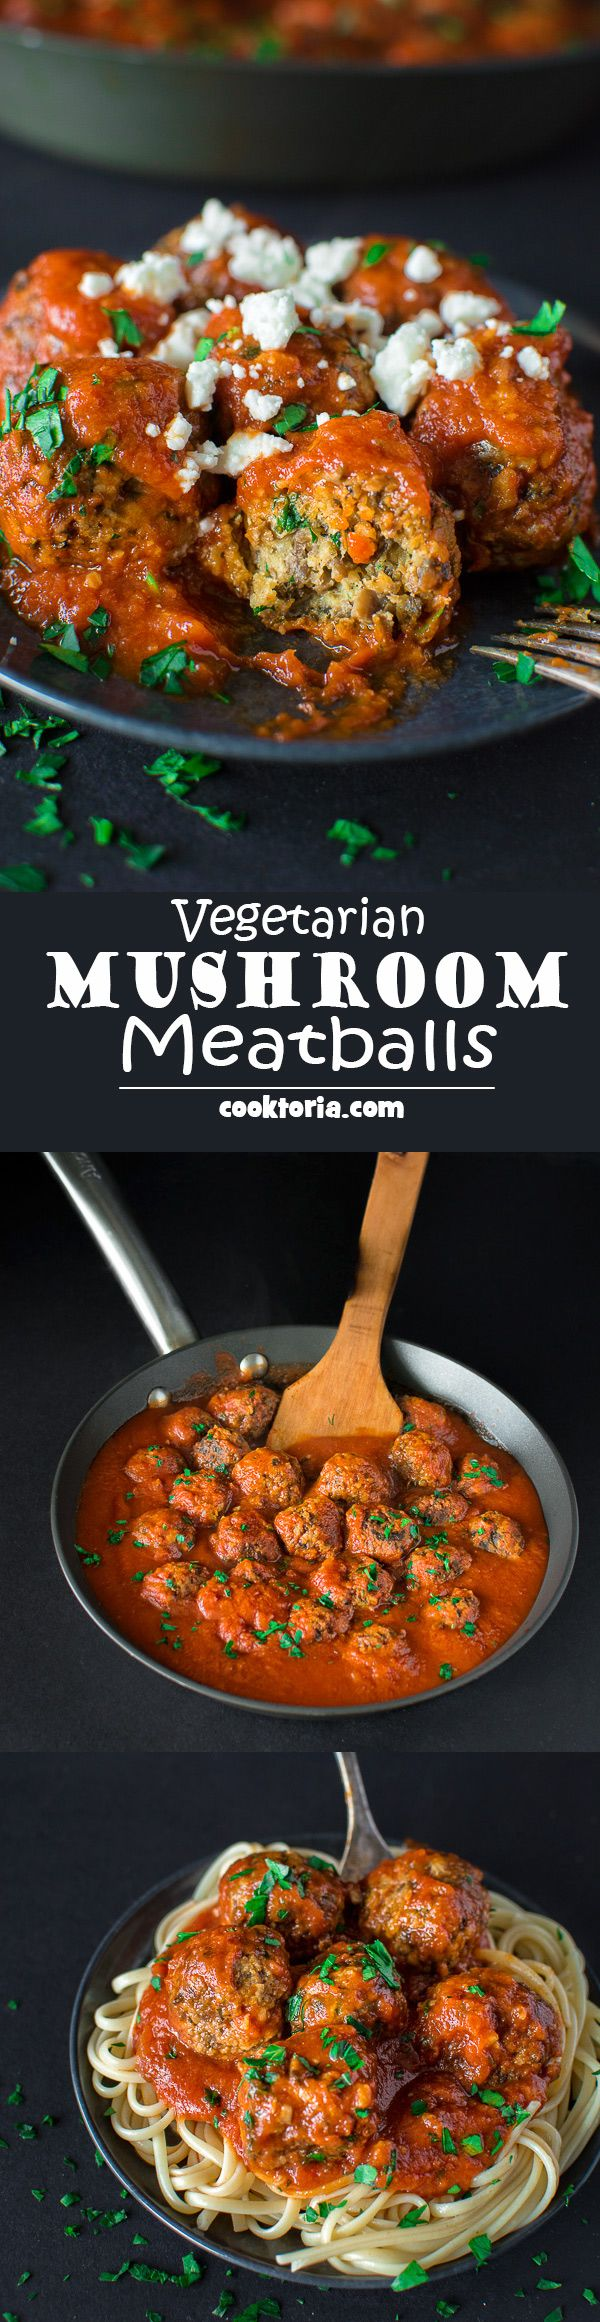 These soft and moist Mushroom Meatballs are simple to prepare and make a perfect vegetarian dinner!❤ COOKTORIA.COM